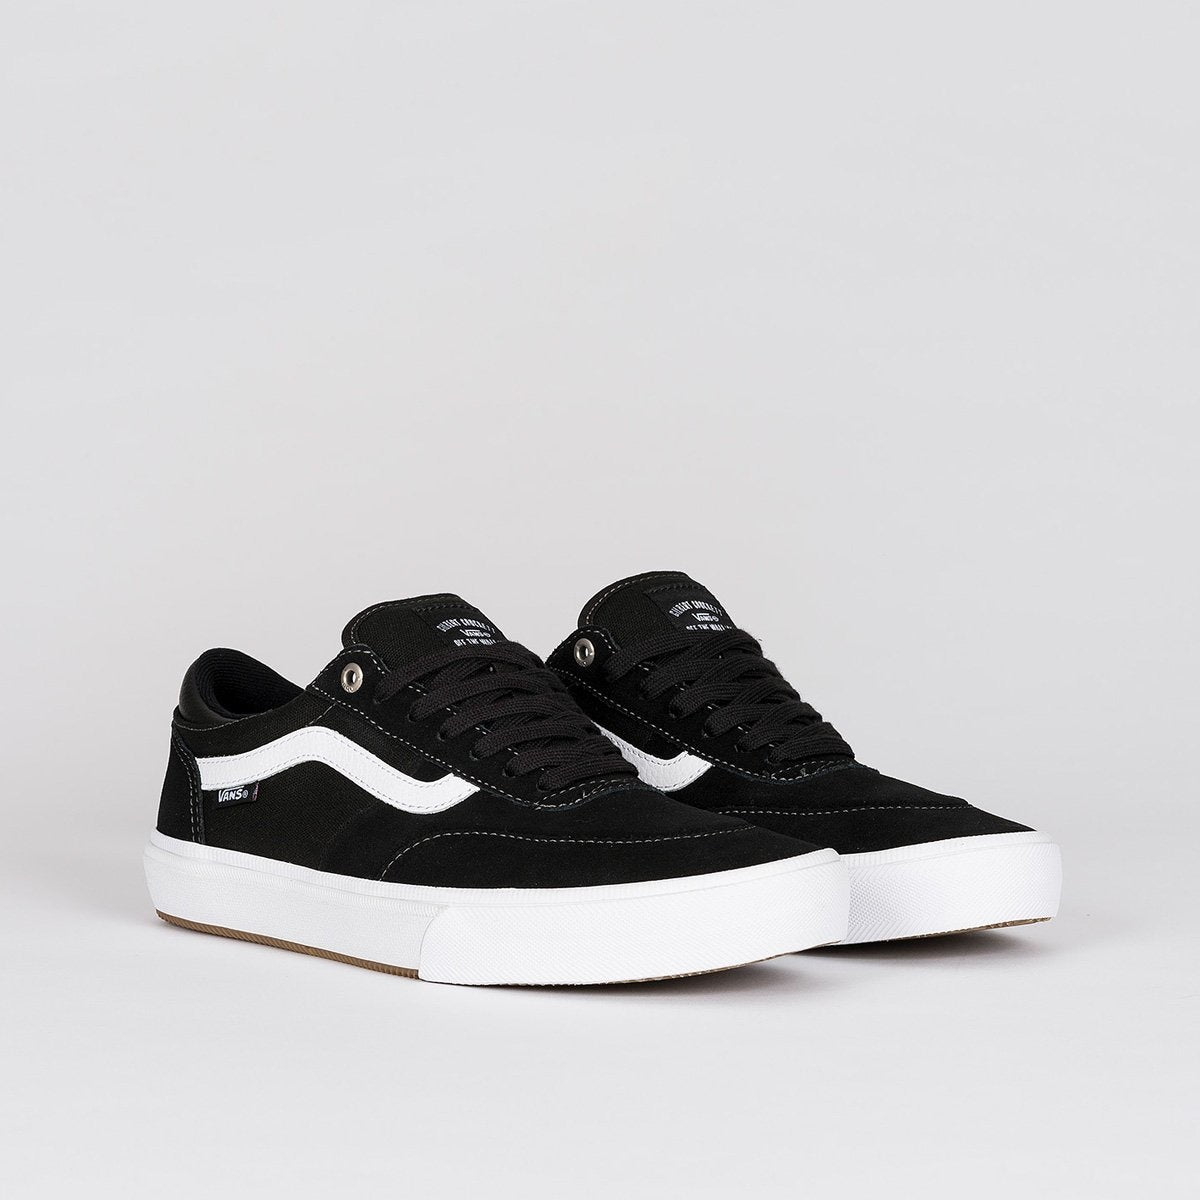 Vans Gilbert Crockett 2 Pro Black/White - Footwear